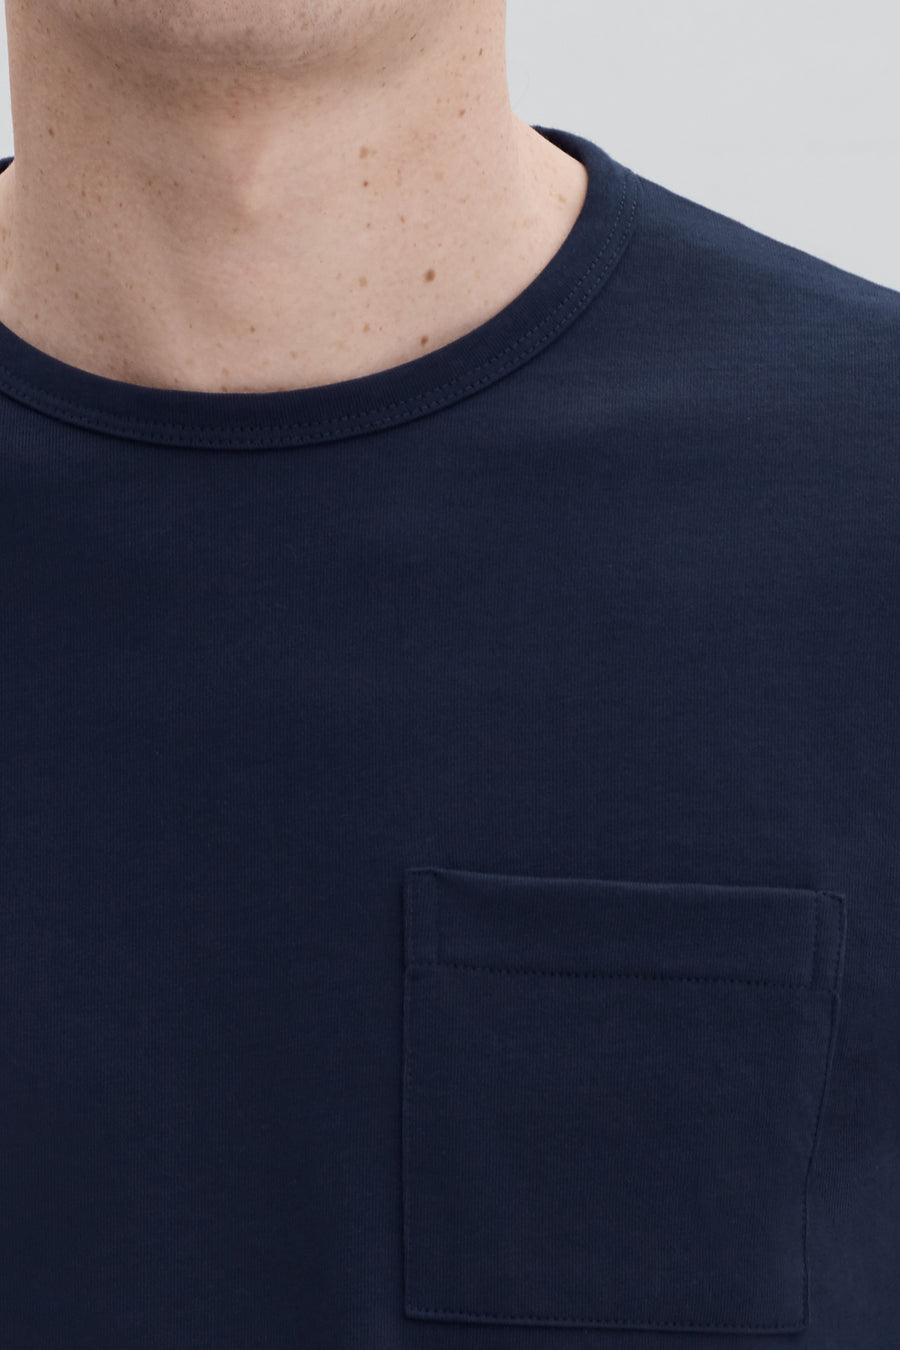 HW Pocket Tee L/S - Dark Navy - Pavilion